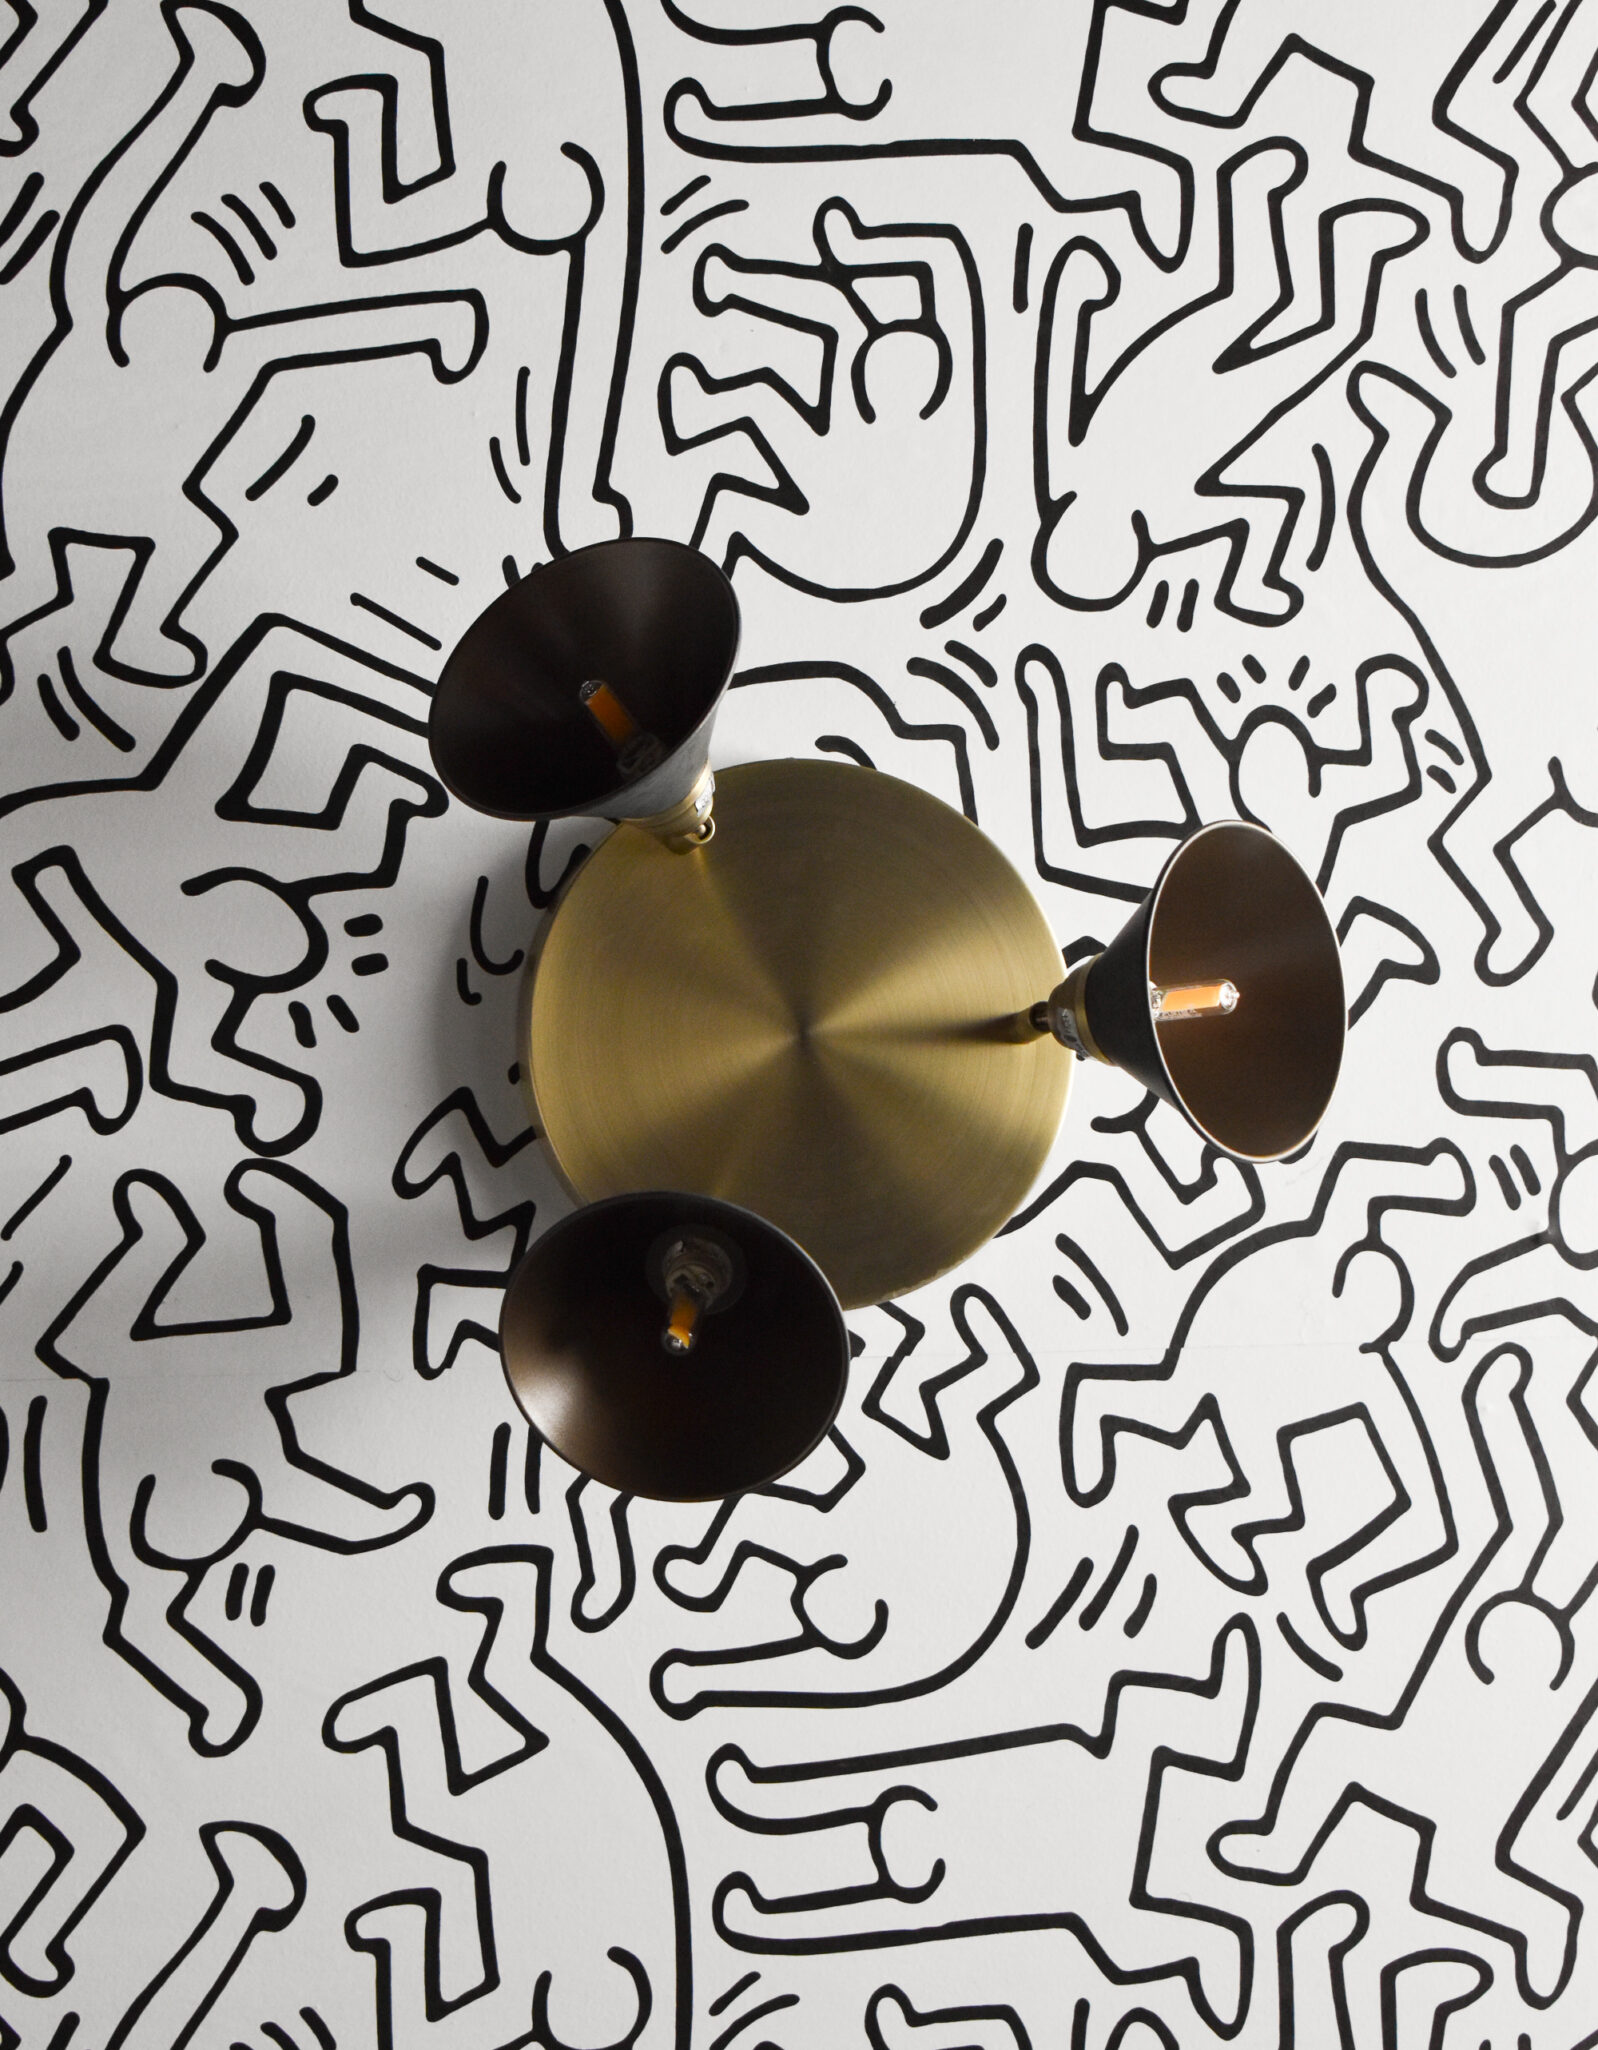 Keith haring monochrome self-adhesive wallpaper and brass lighting fixture